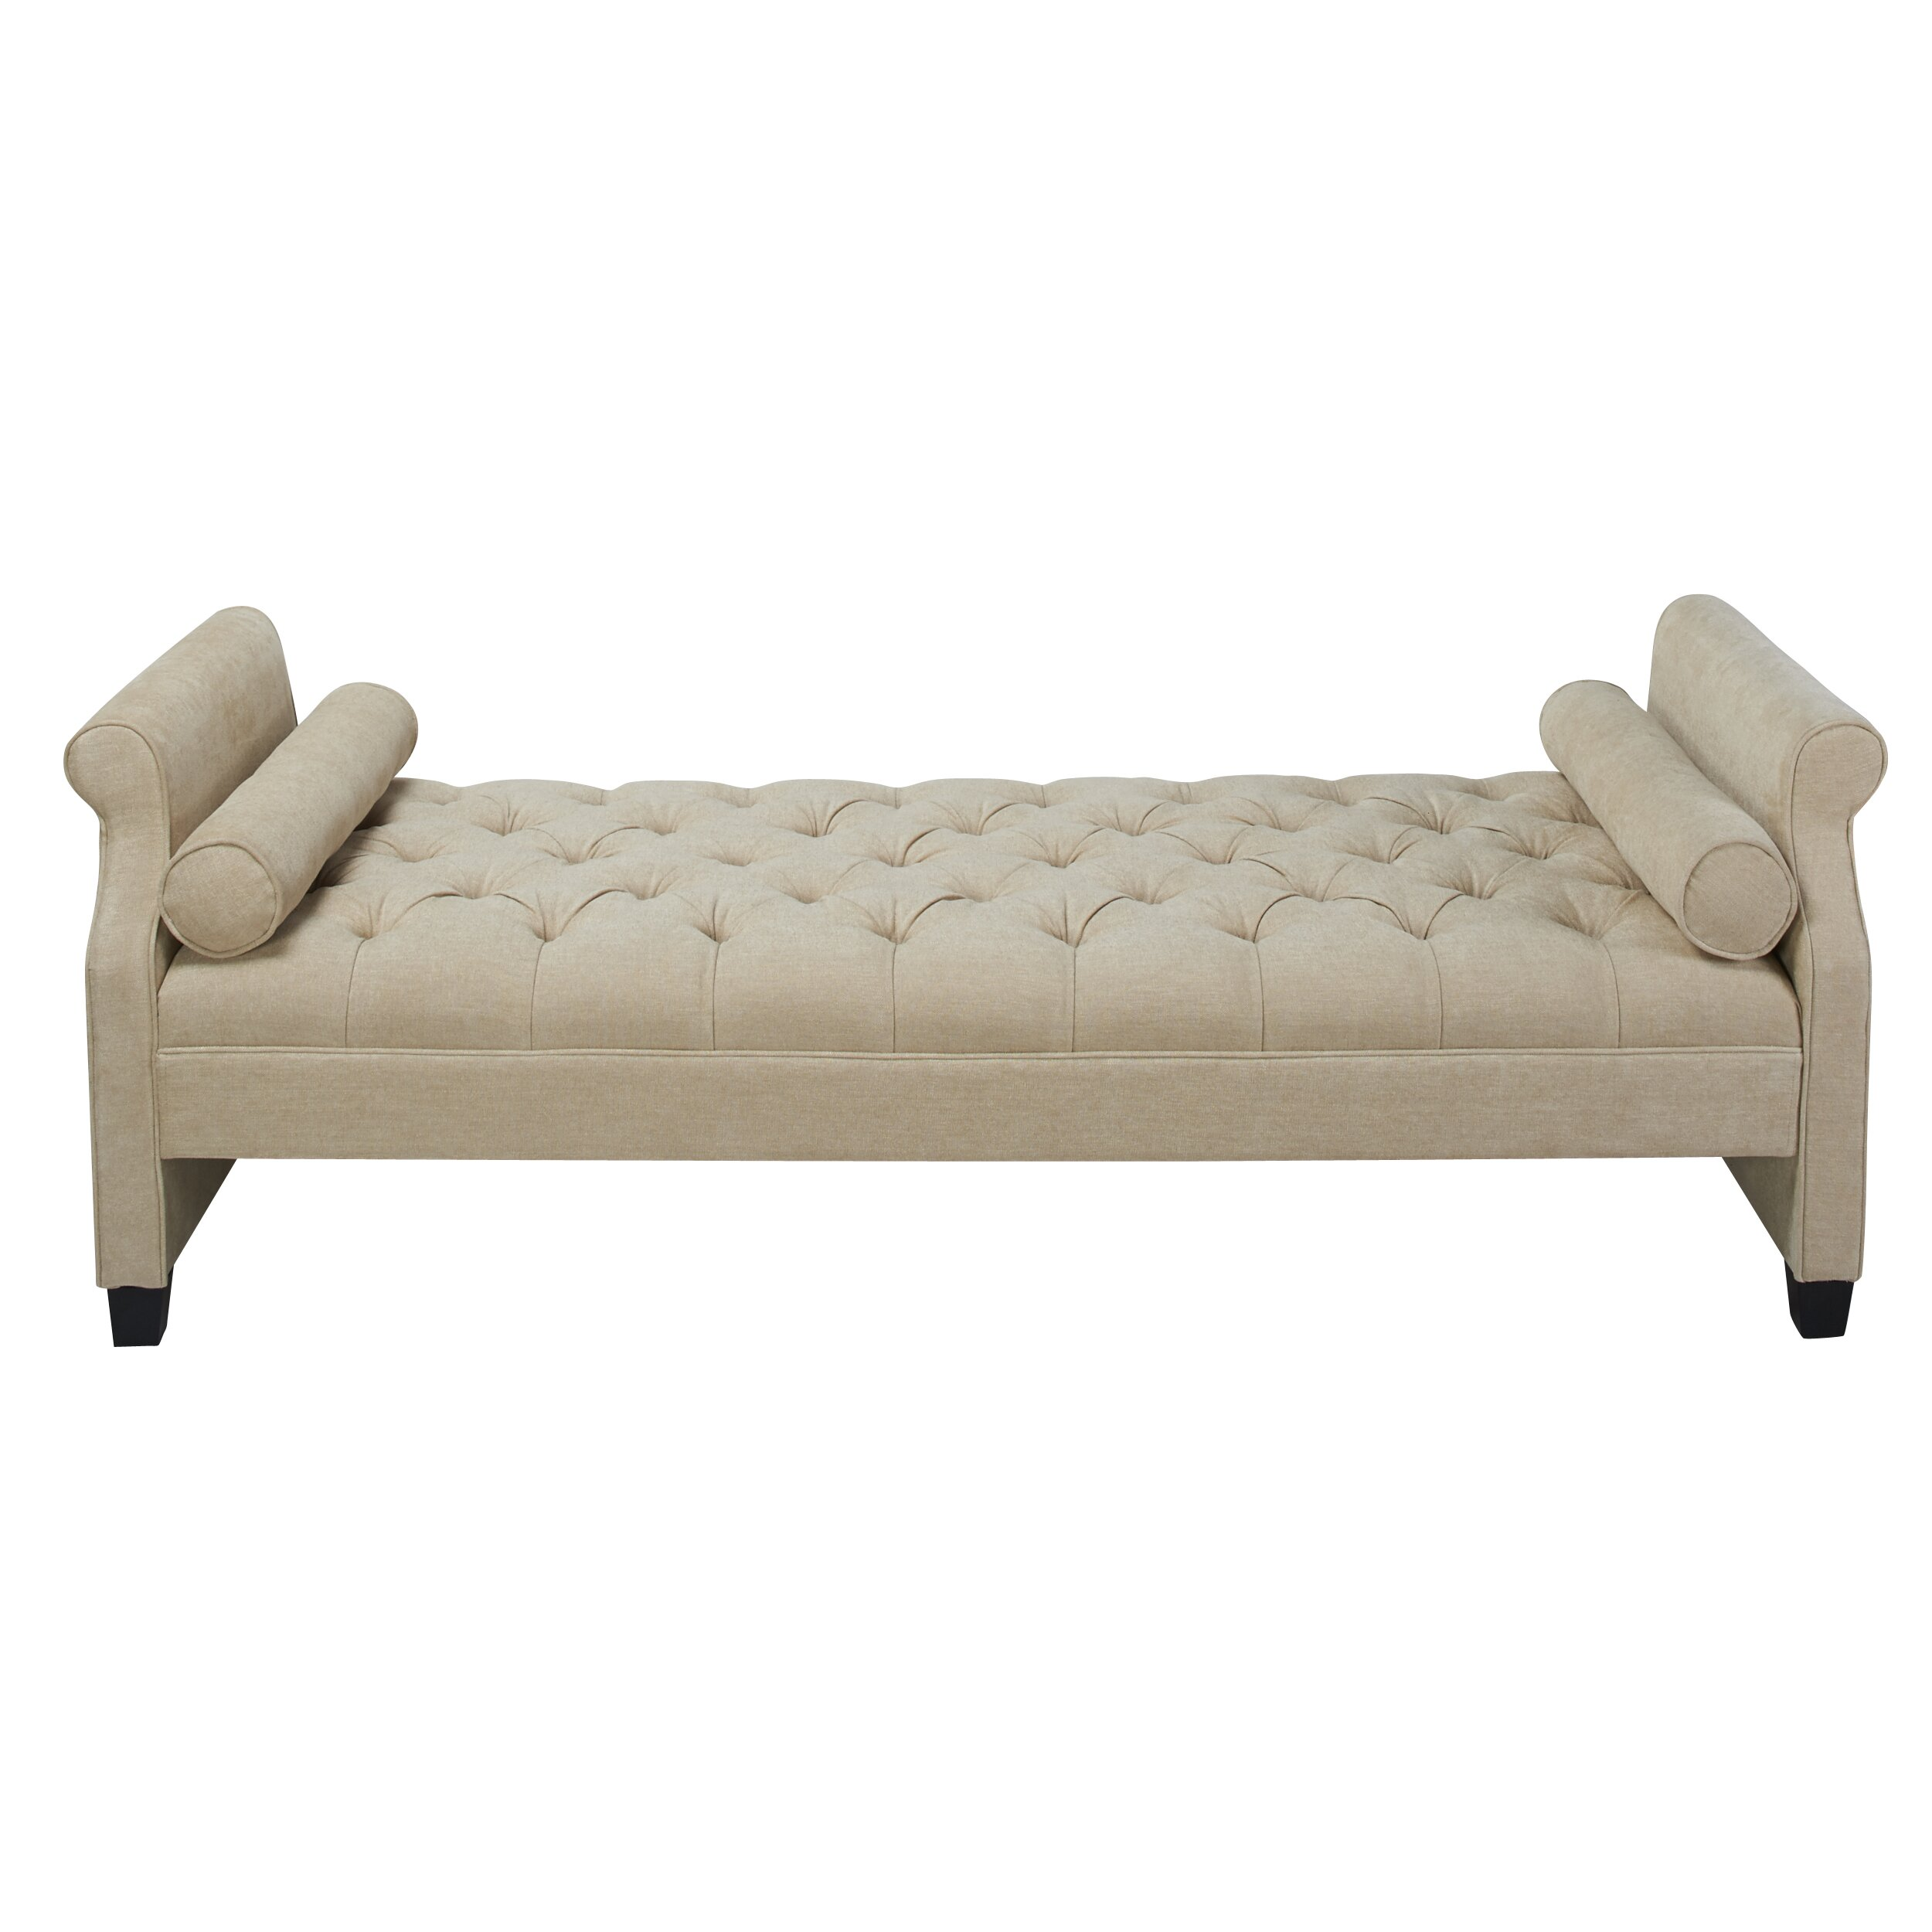 Jennifer taylor eliza upholstered sofa bed reviews wayfair for Divan upholstered bed